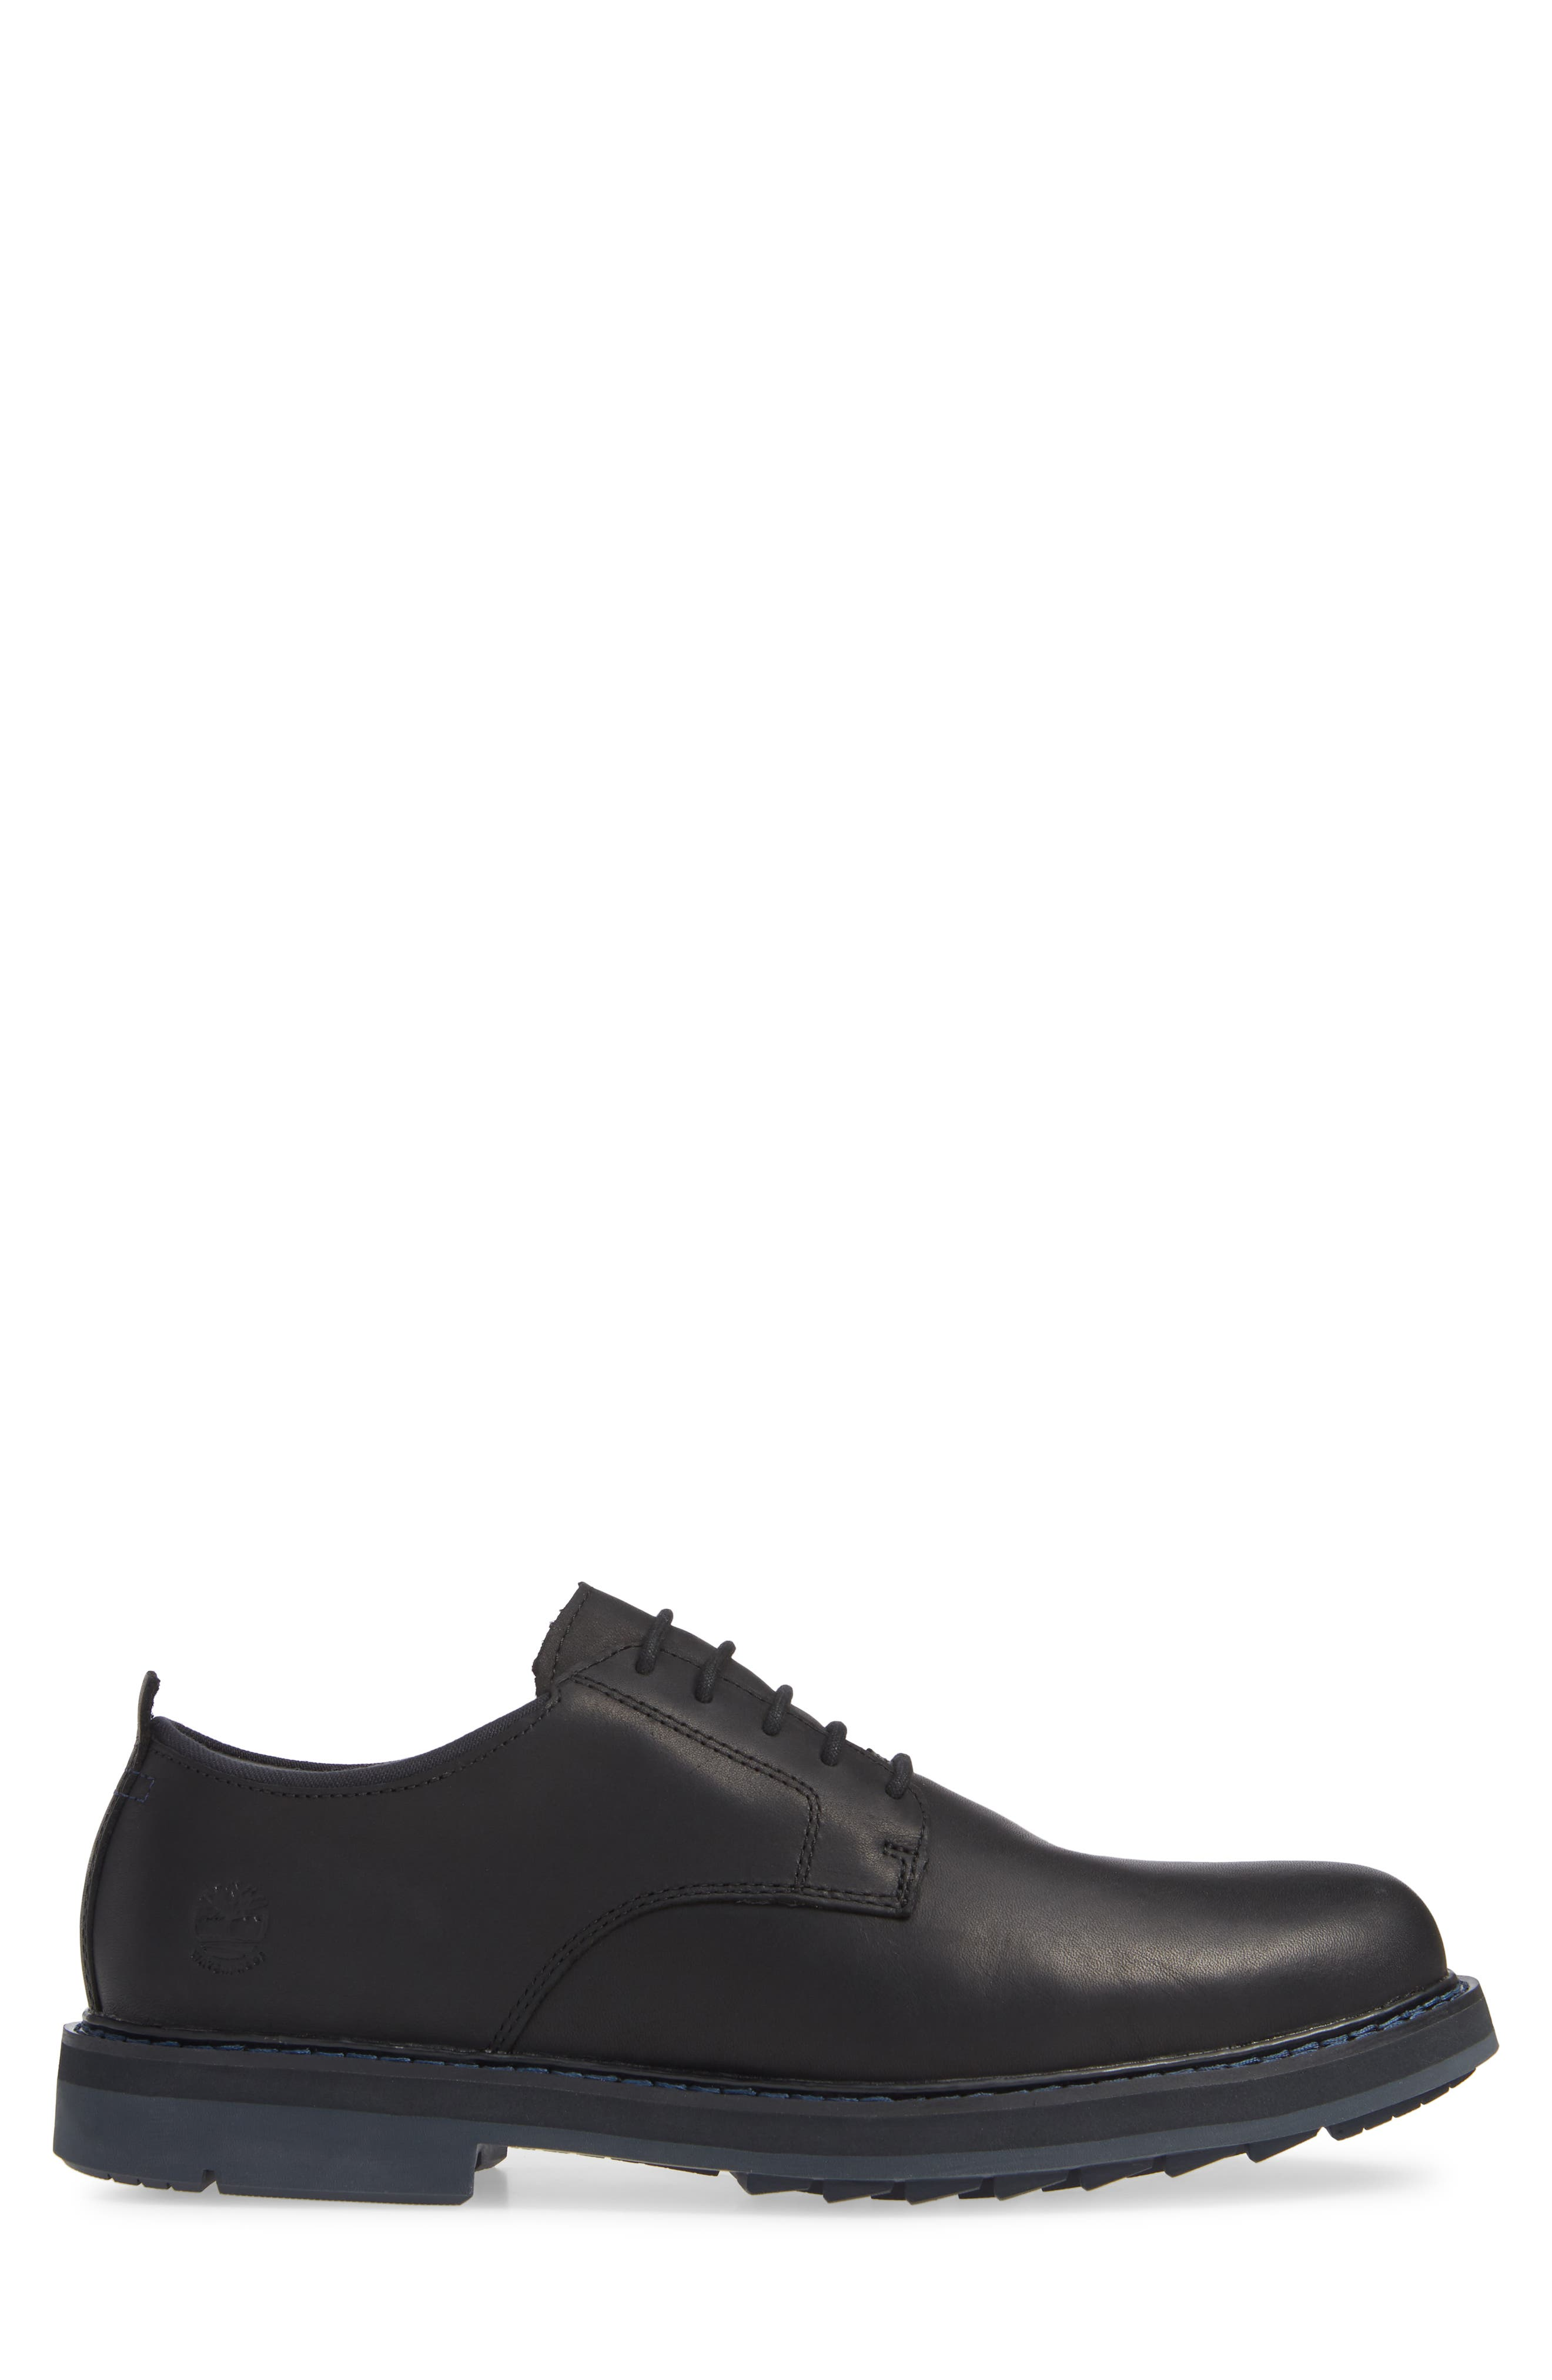 Squall Canyon Waterproof Plain Toe Derby,                             Alternate thumbnail 3, color,                             BLACK LEATHER